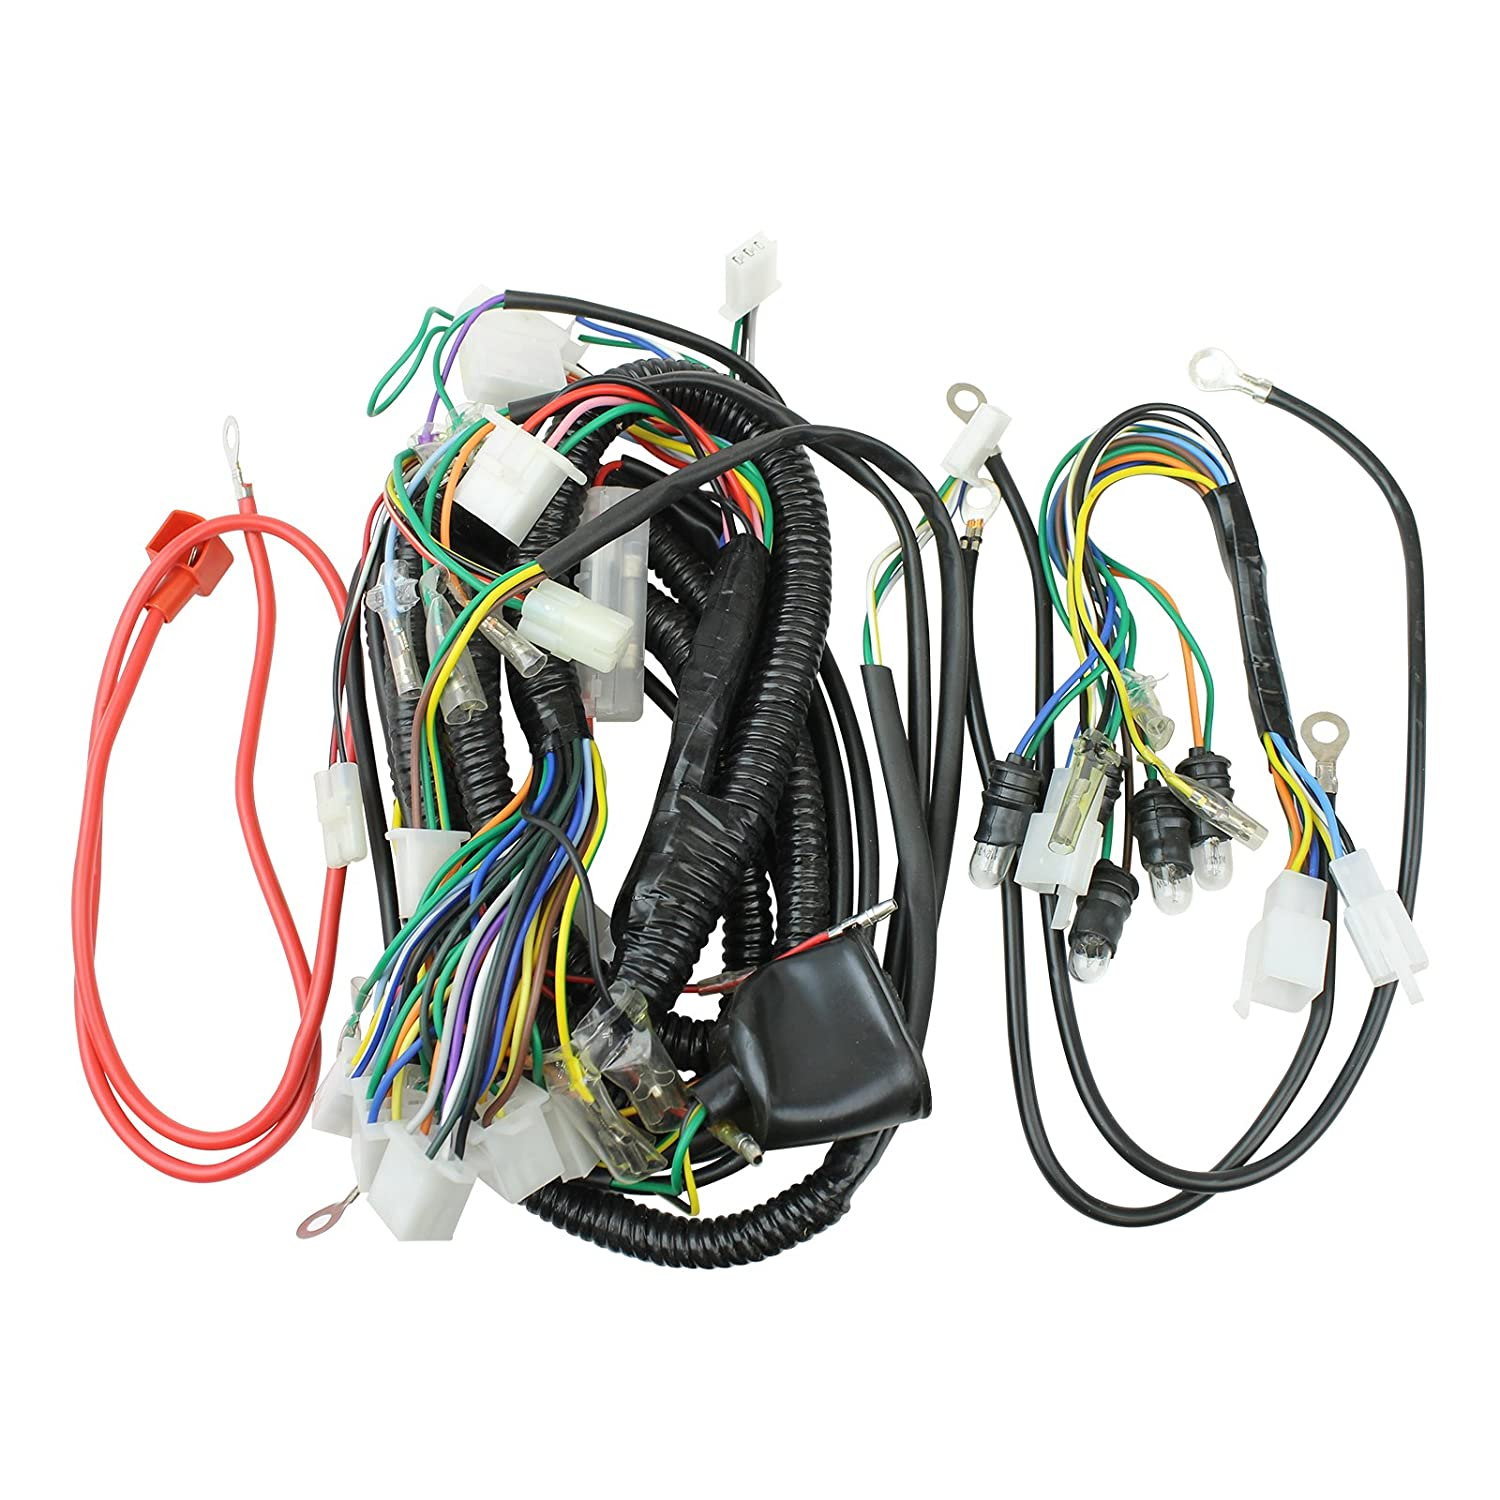 wrg 2891] kymco wiring harnessamazon com taotao vip 50cc scooter complete wire harness new automotive